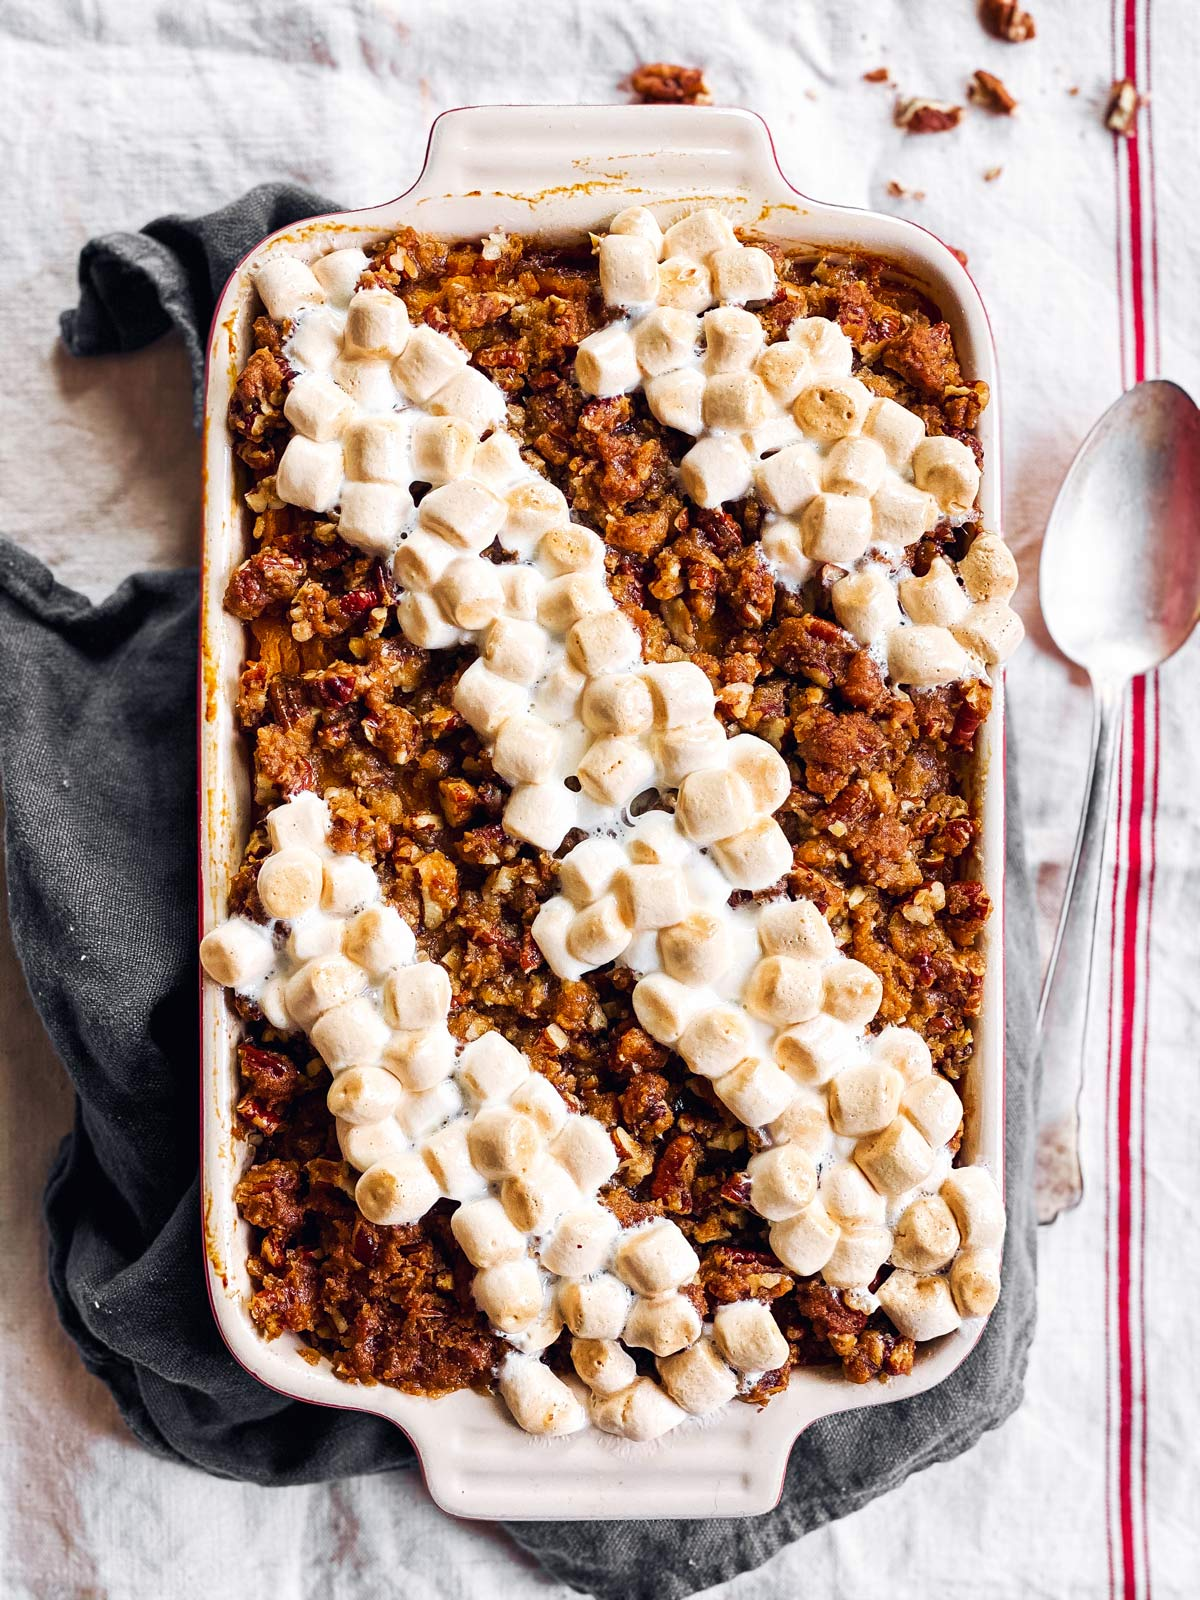 sweet potato casserole with marshmallows and pecan praline topping on a table cloth